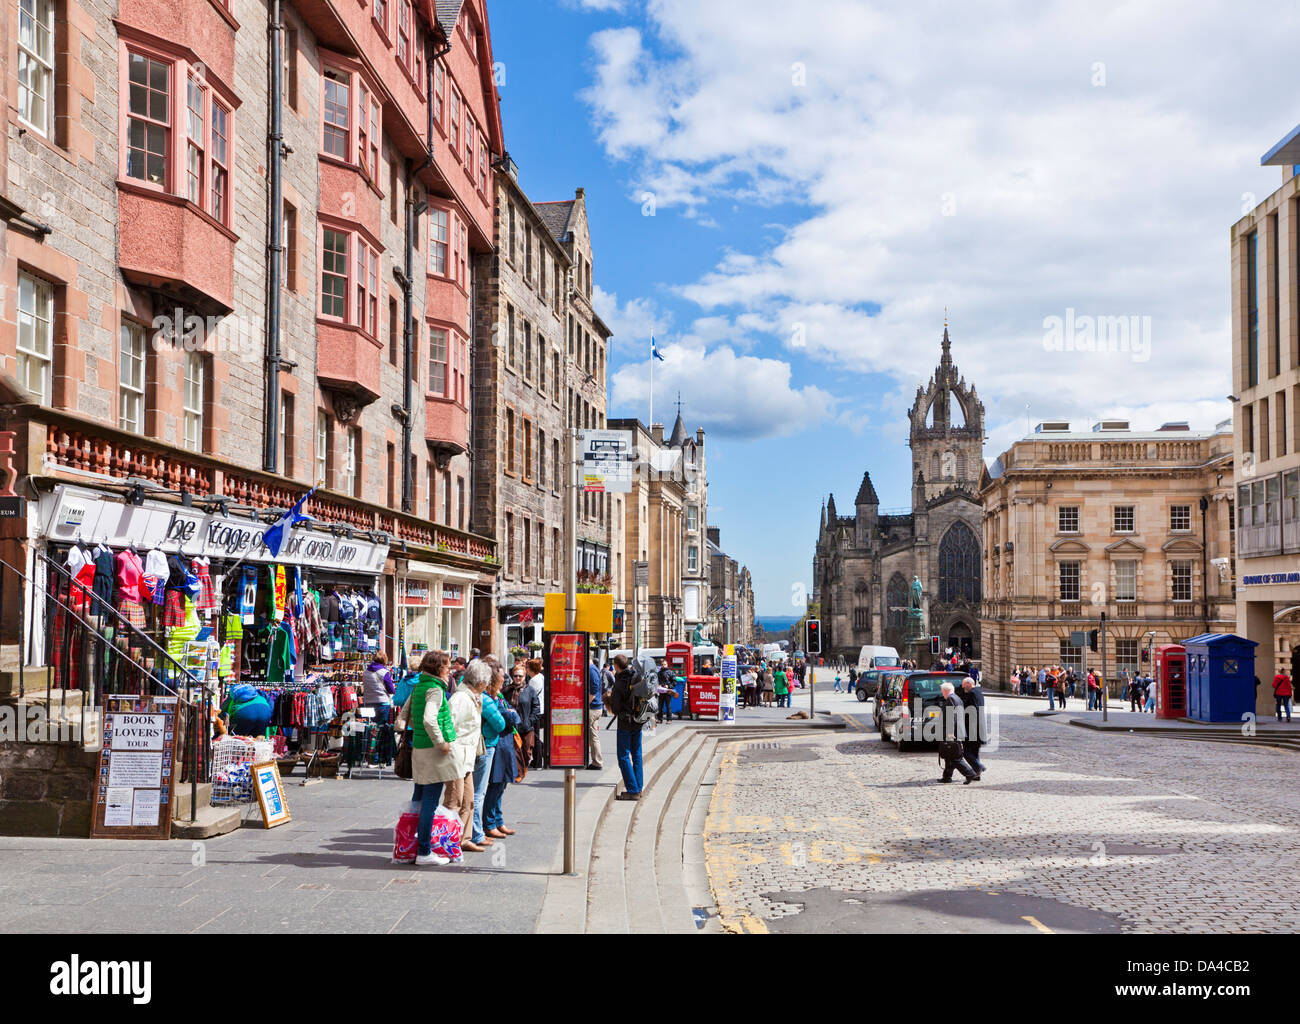 The High Street in the old town or the royal Mile towards St Giles cathedral Edinburgh Midlothian Scotland UK GB - Stock Image